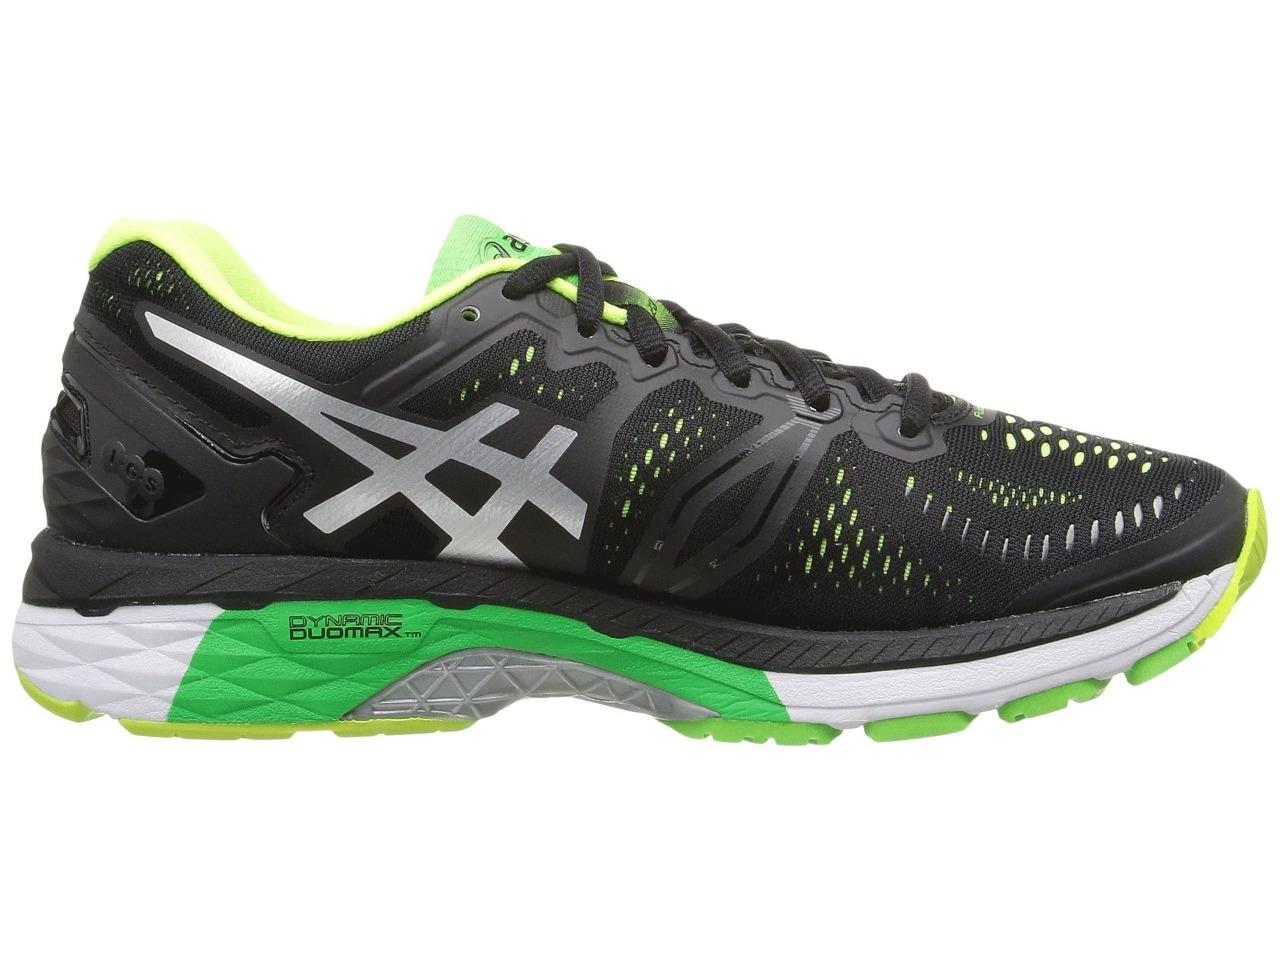 New ASICS Gel Kayano 23 Running Shoes Men s Size 16 Black Silver T646N-9093 f42fb3a426665